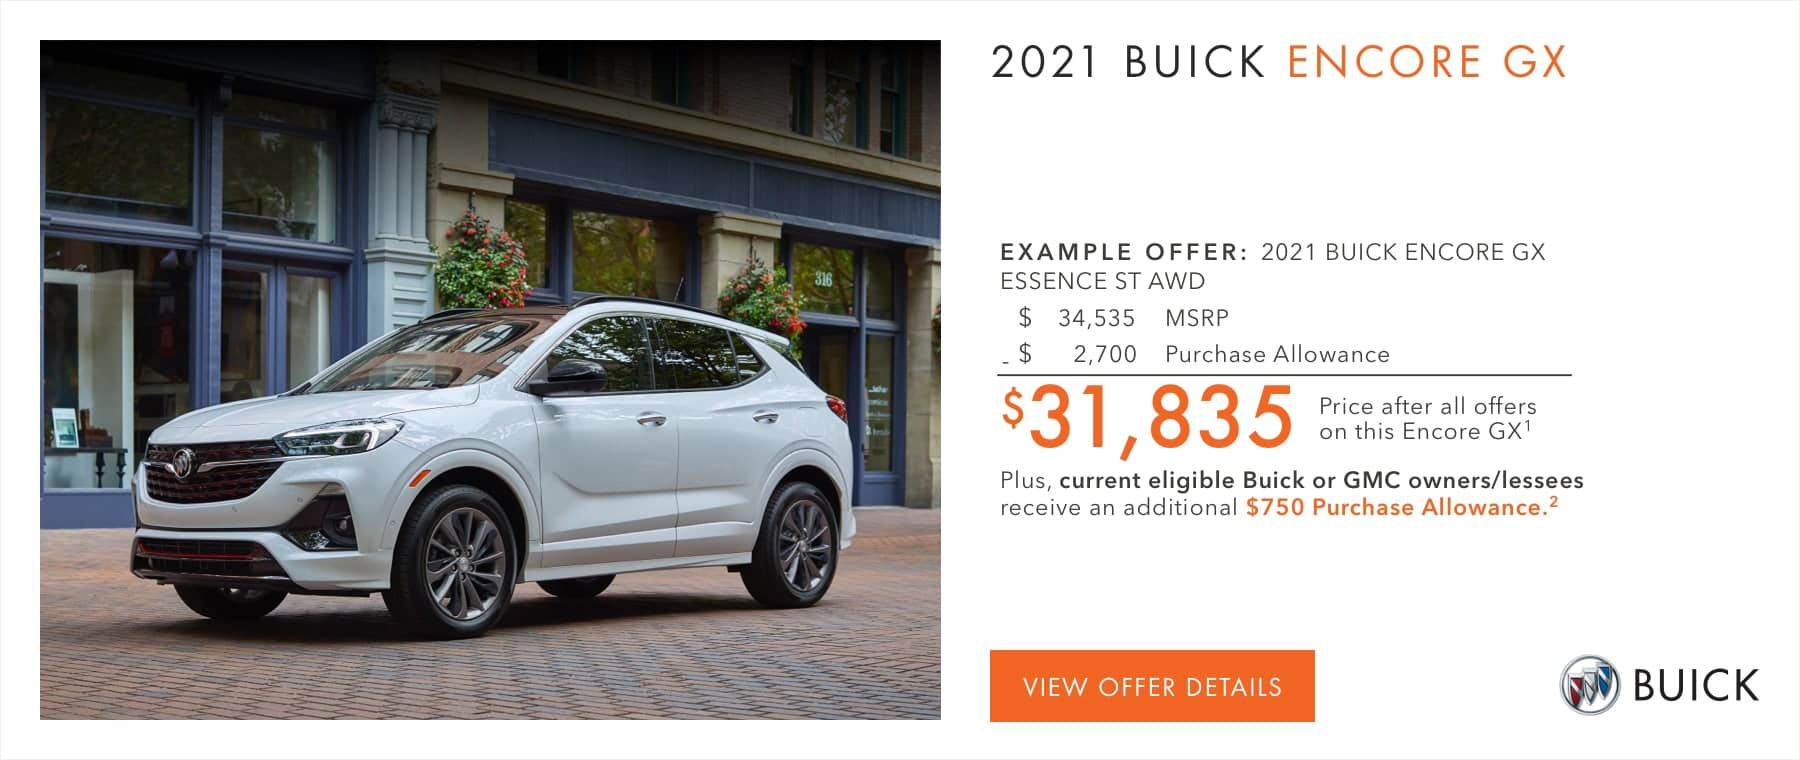 $31,835 Price after all offers on this Encore GX.2 Plus, current eligible Buick or GMC owners/lessees receive an additional $750 Purchase Allowance.2